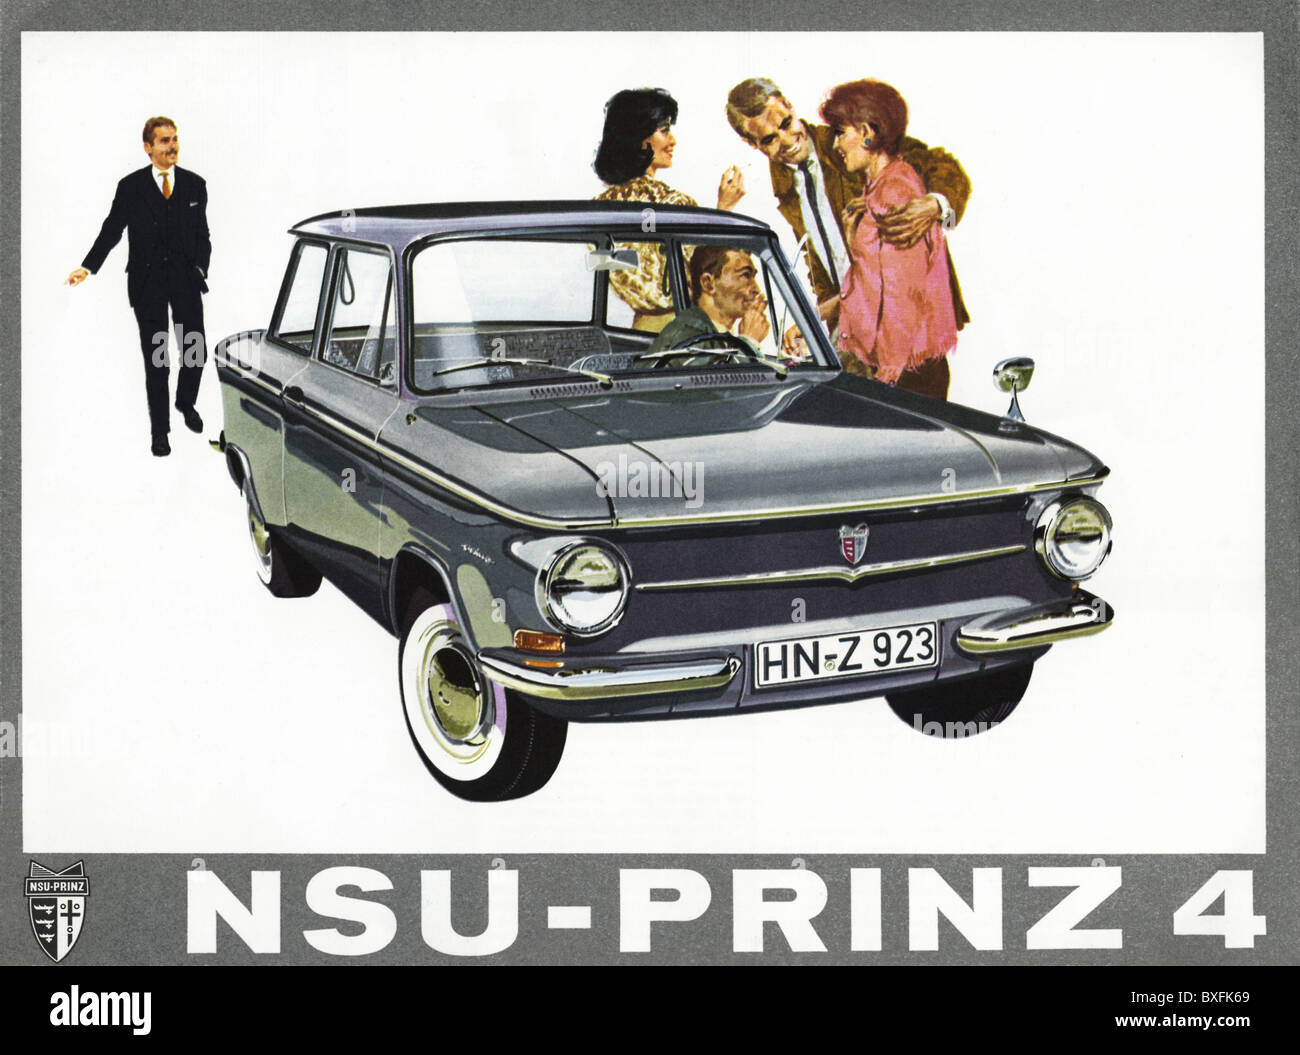 nsu prinz stockfotos nsu prinz bilder alamy. Black Bedroom Furniture Sets. Home Design Ideas